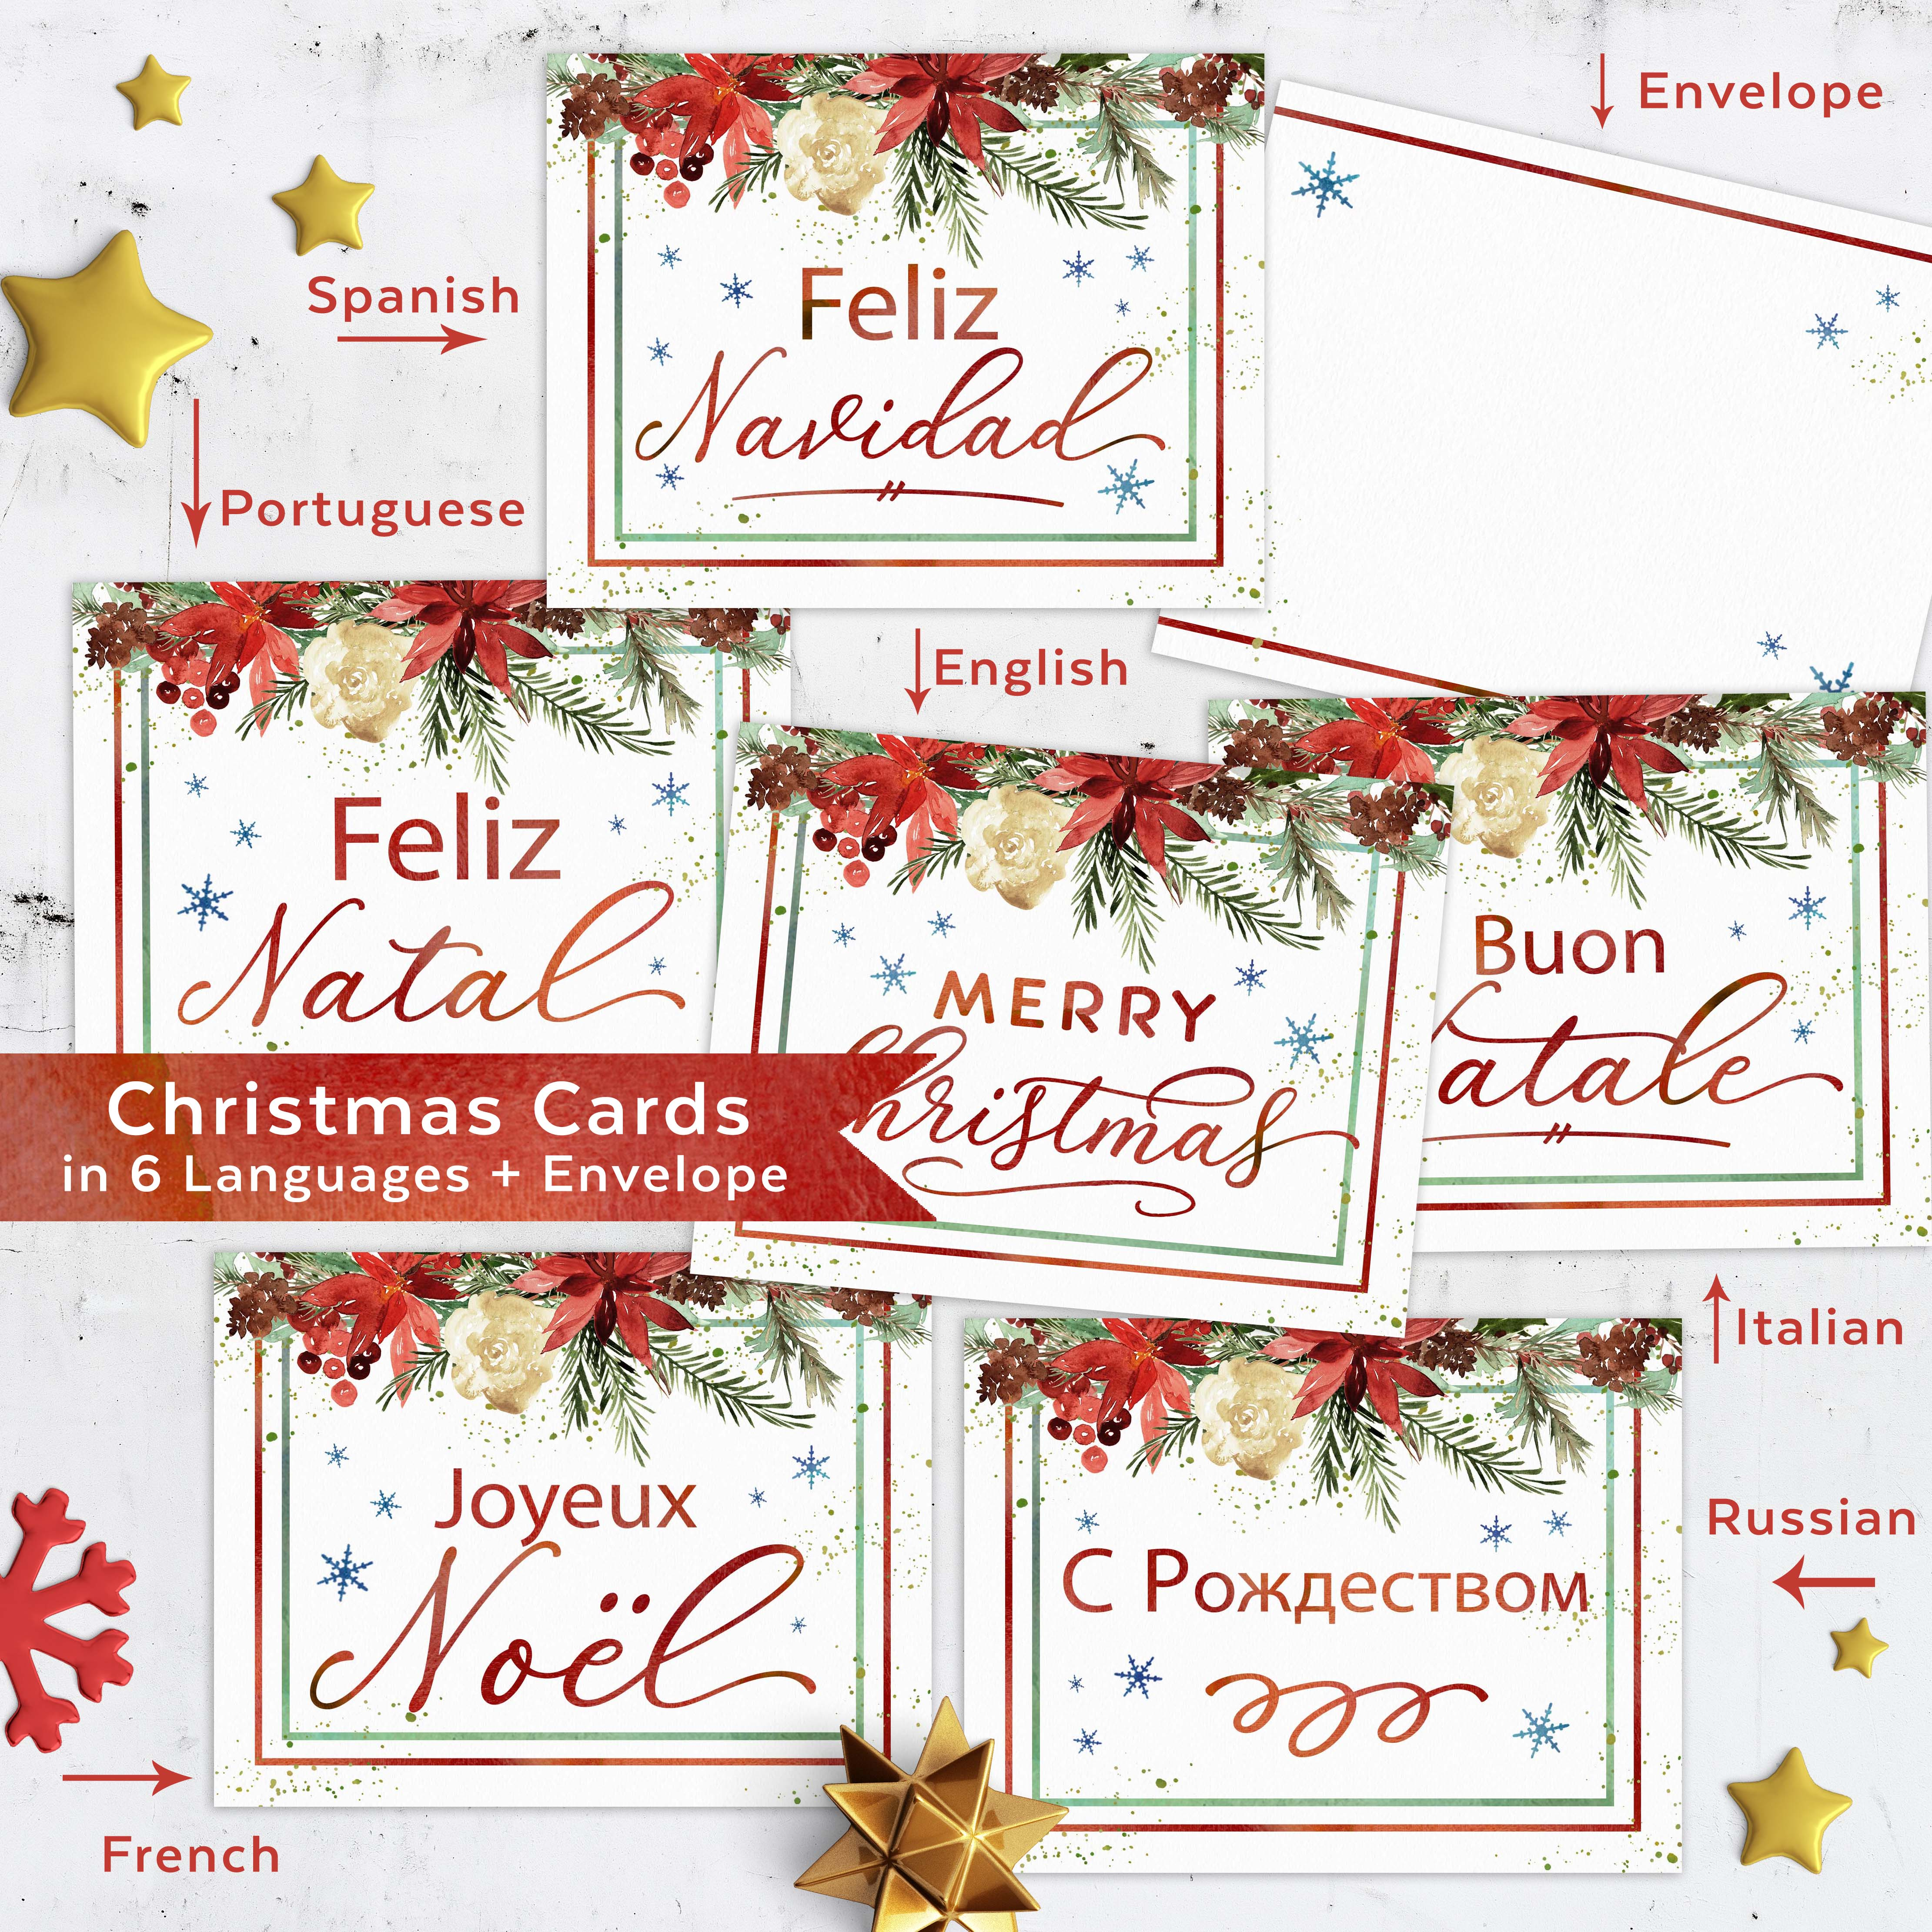 picture about Christmas Envelopes Free Printable named Totally free Xmas Playing cards inside of 6 Languages English, Spanish